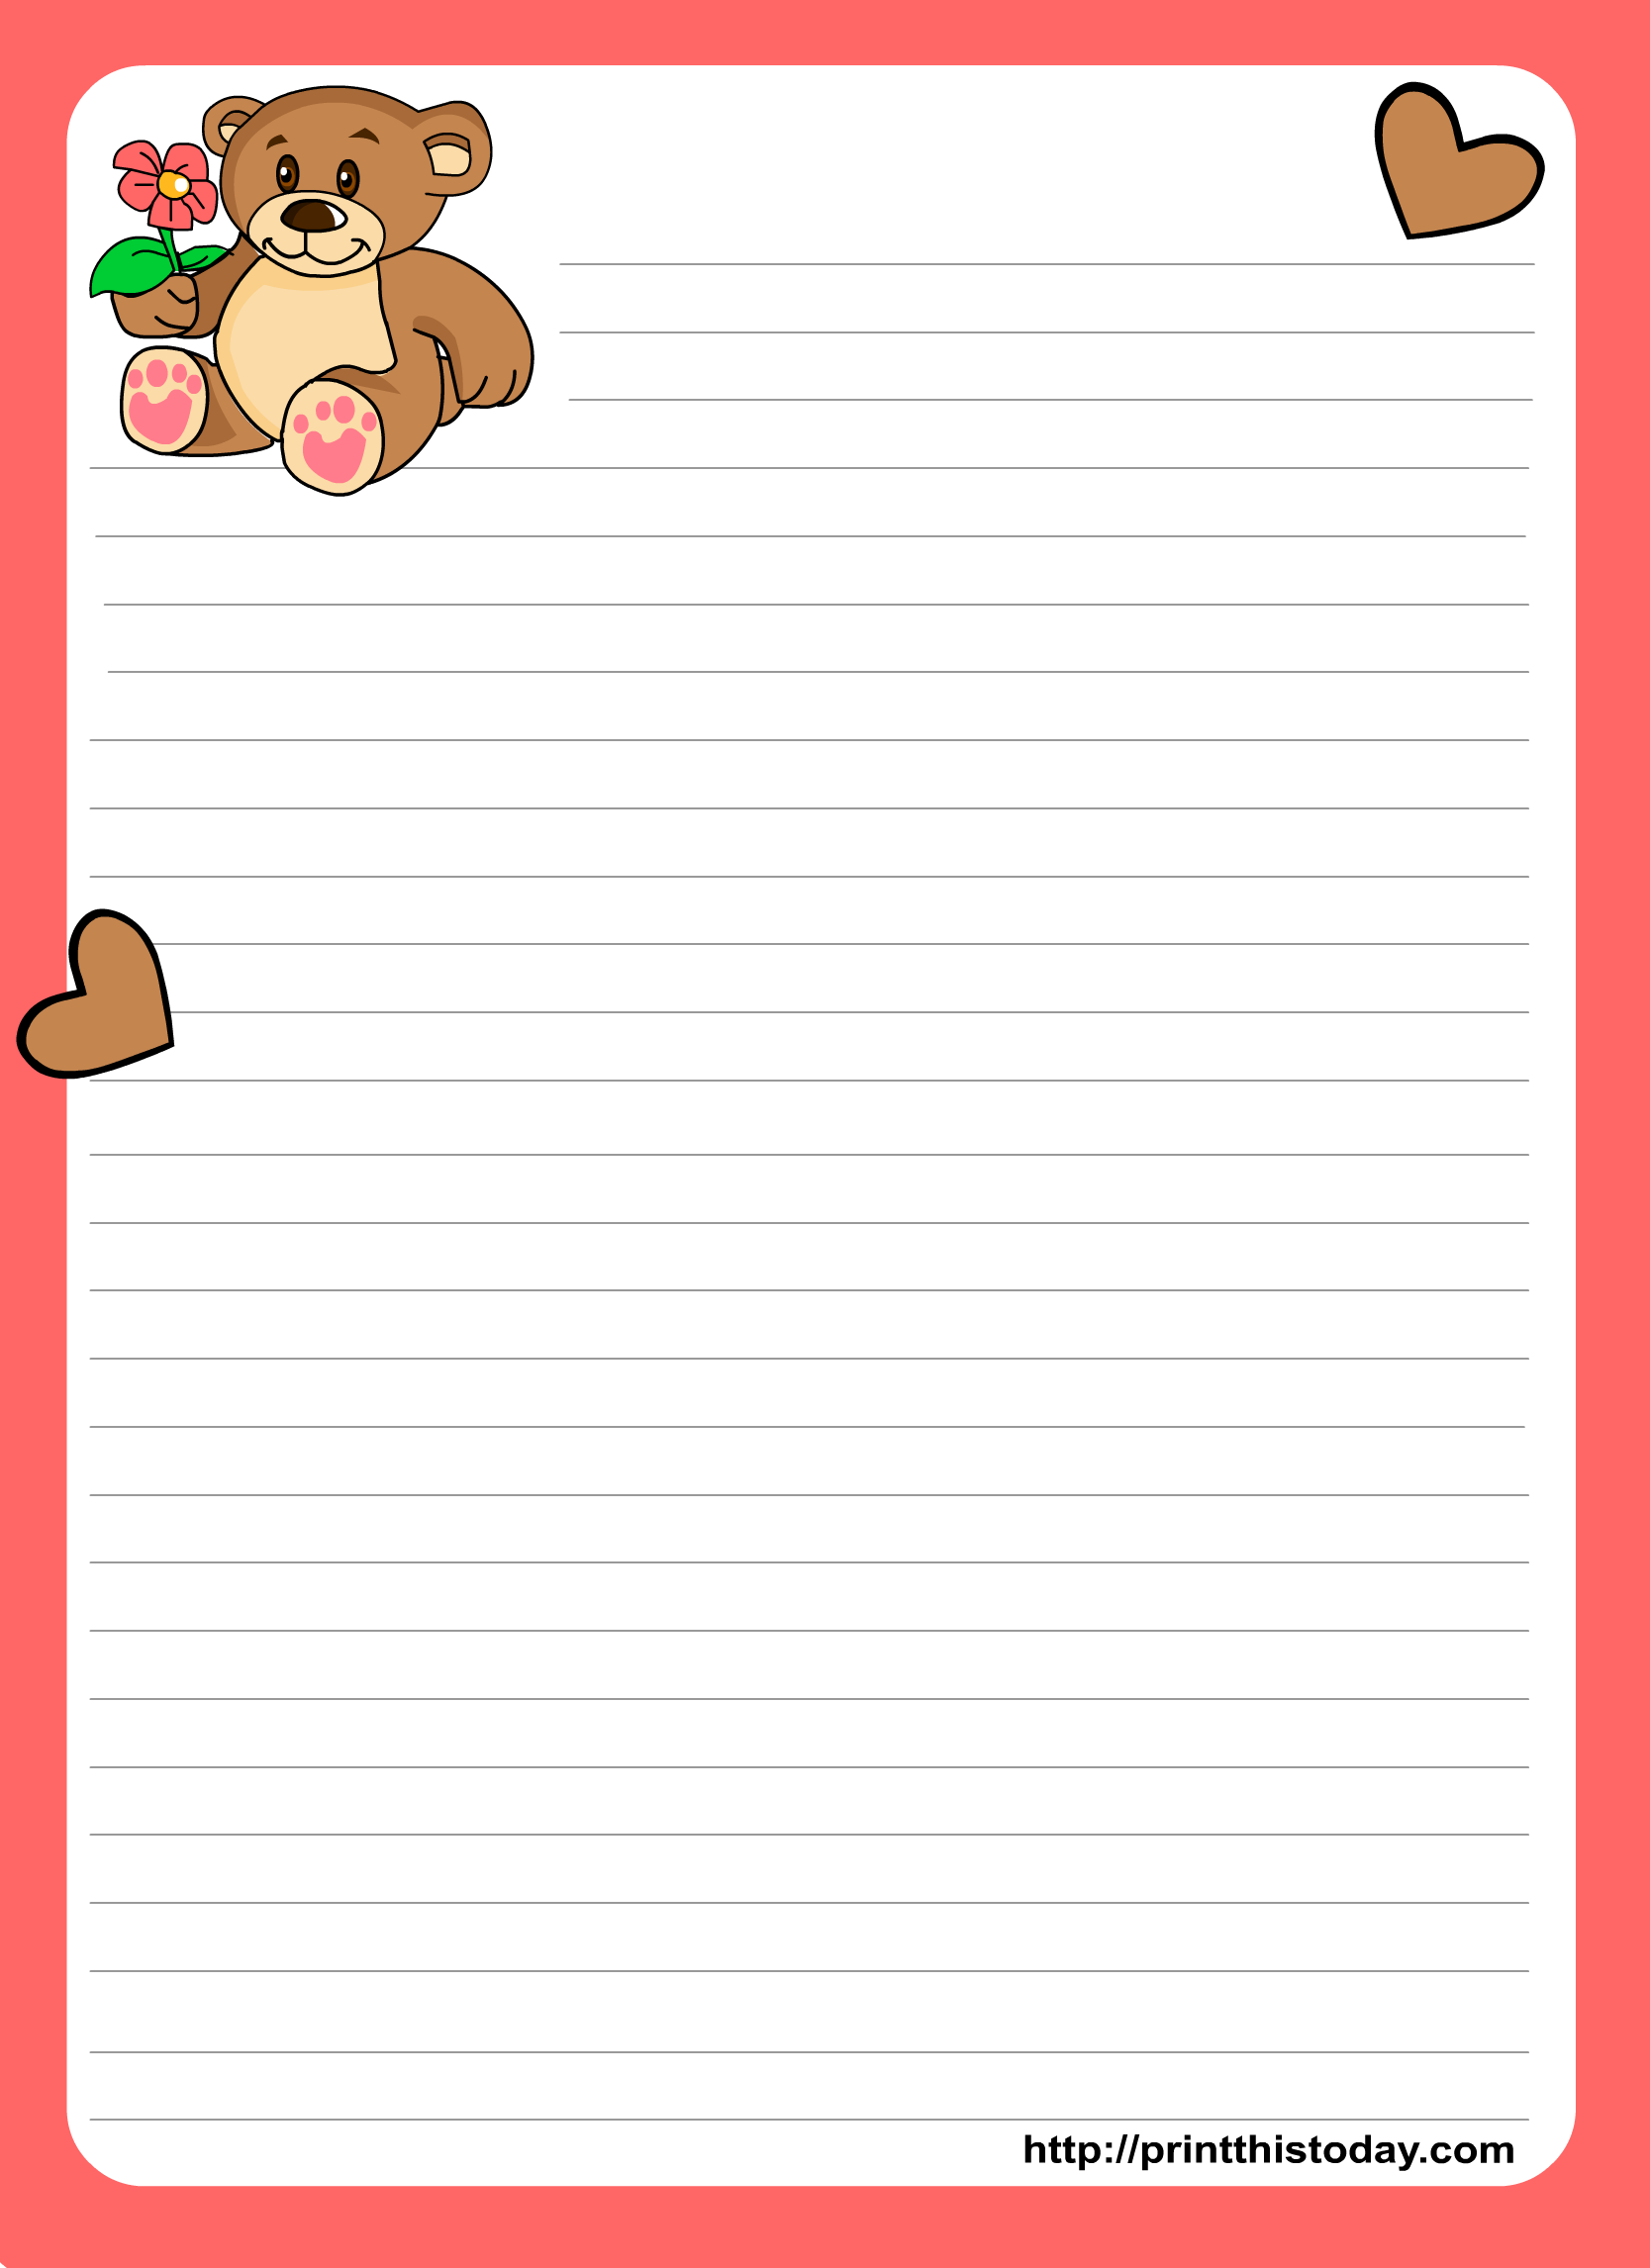 Letter pad stationery design featuring Teddy bear and flower